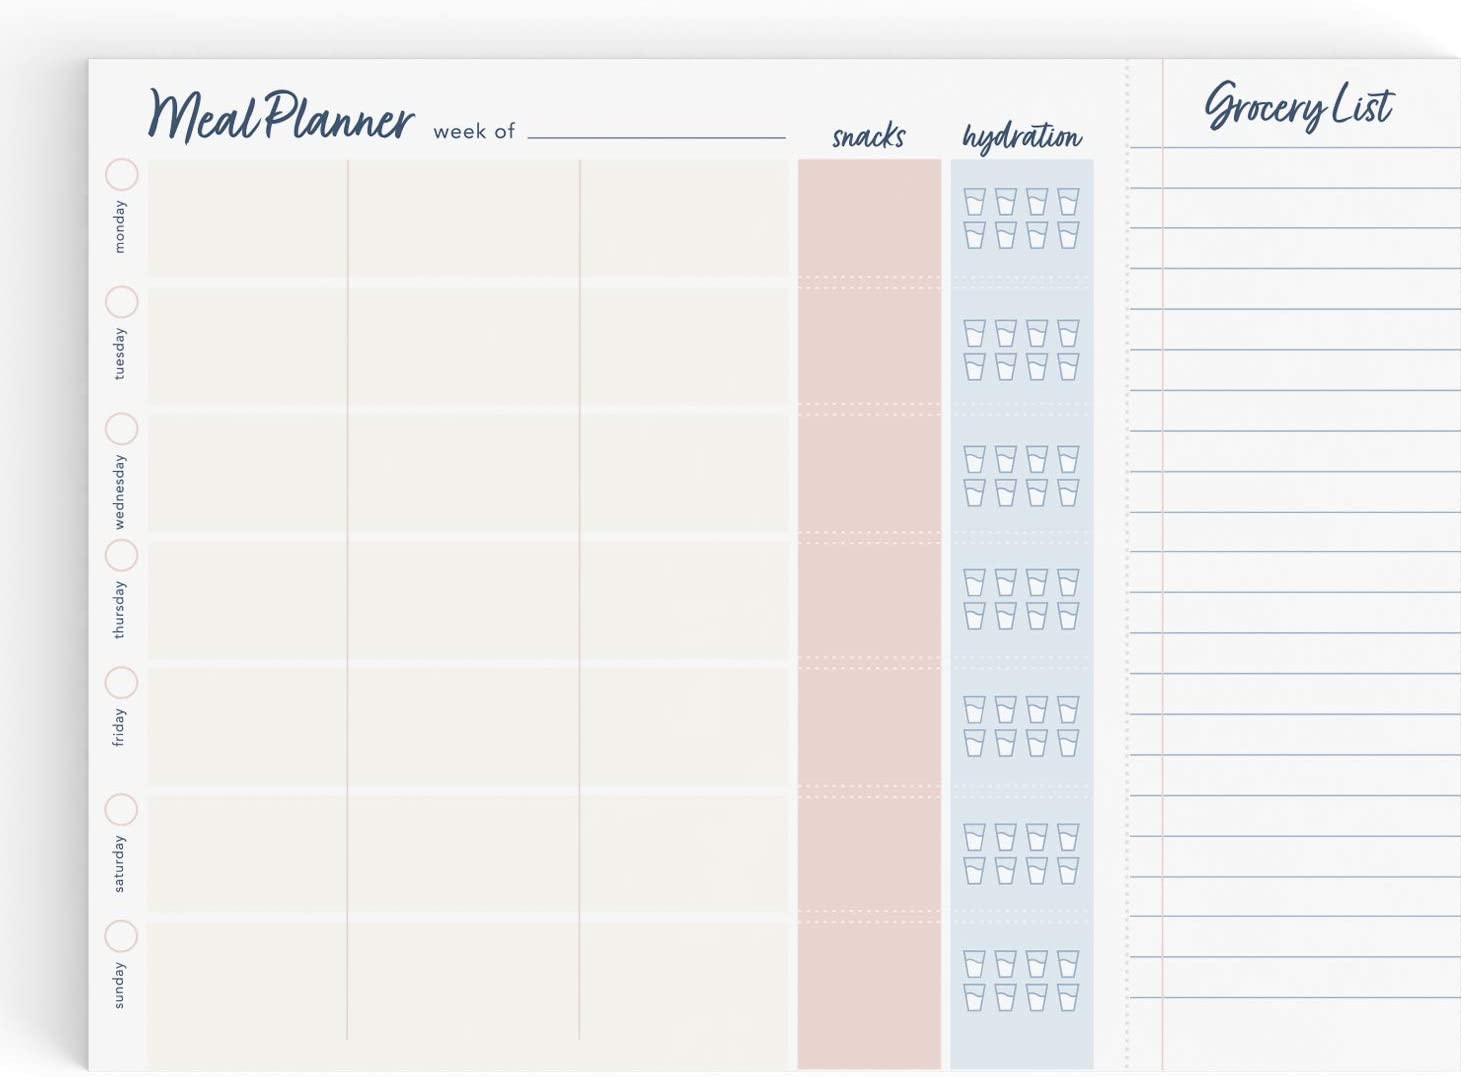 Weekly Meal Planner Notepad with Perforated Grocery List, Food Planning Menu Organizer and Shopping List Pad, 60 Tear-Off Sheets, 8 in by 11 in, Blush Pink and Navy Blue Elegant Simple Design